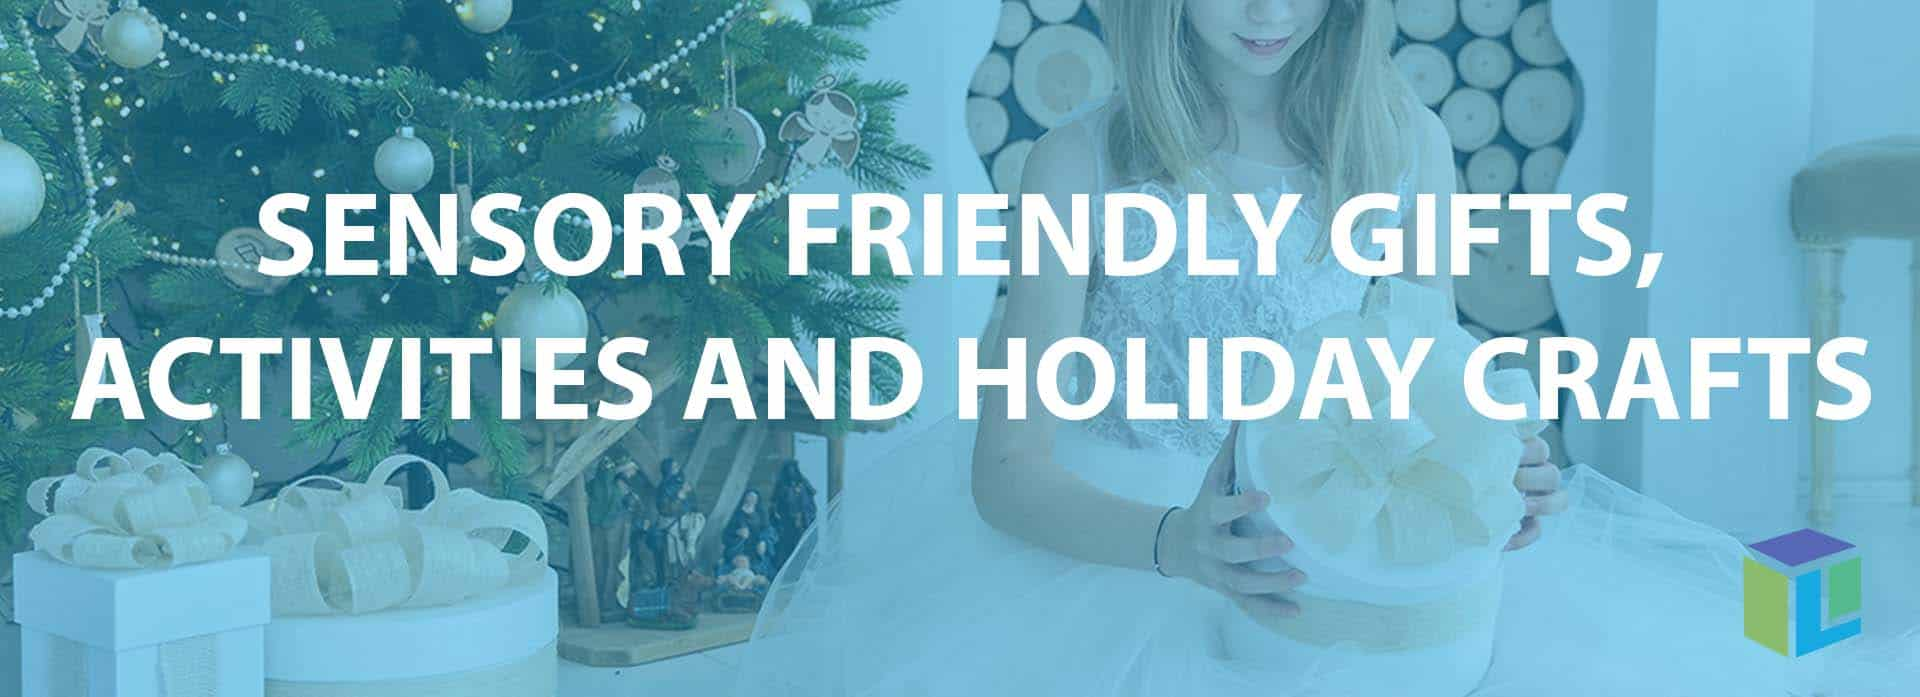 Sensory Friendly Gifts, Activities And Holiday Crafts